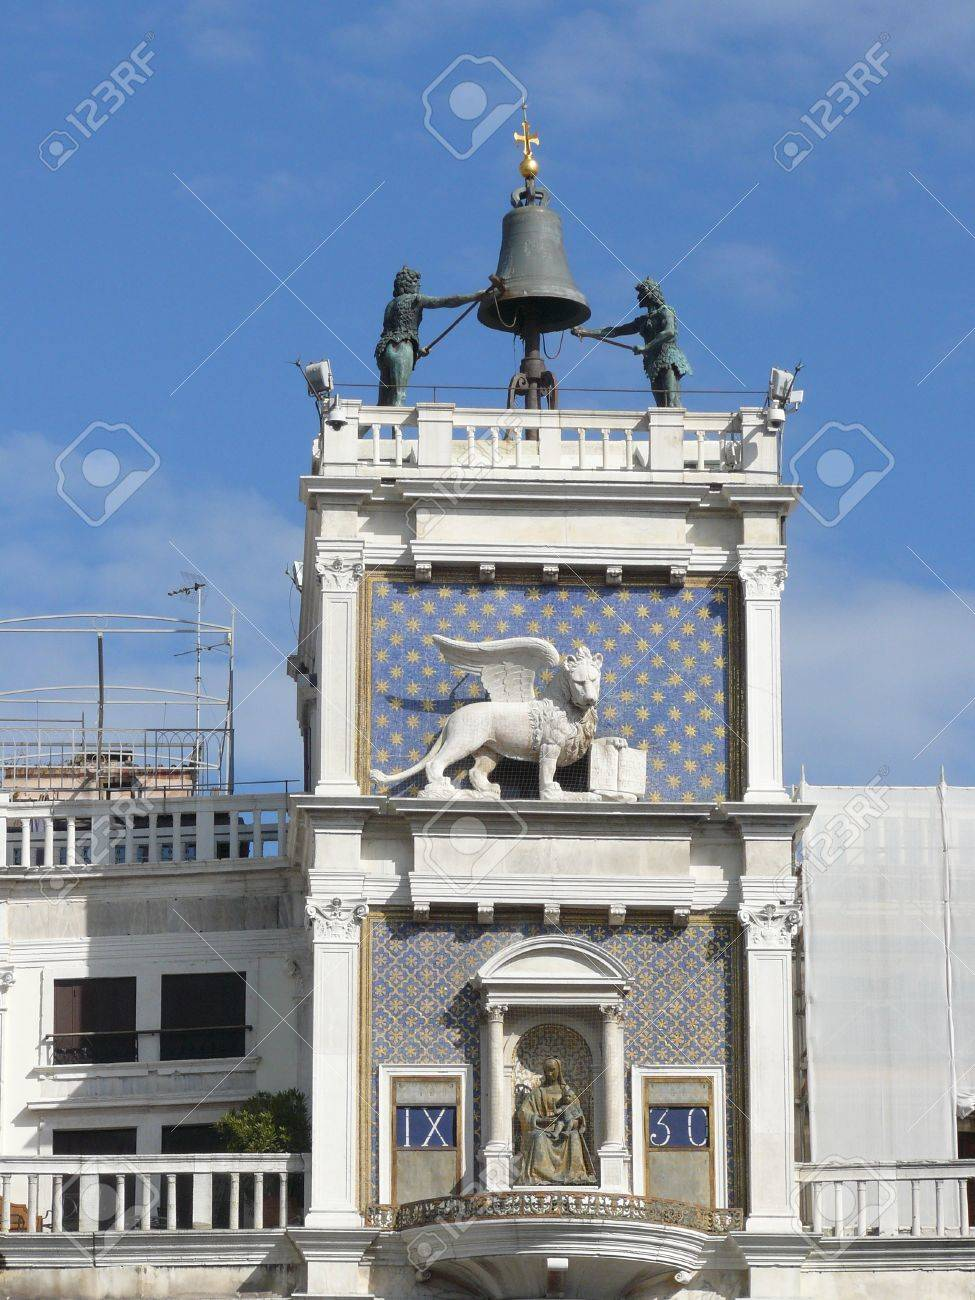 The San Marco bell tower in Venice in Italy Stock Photo - 12506348